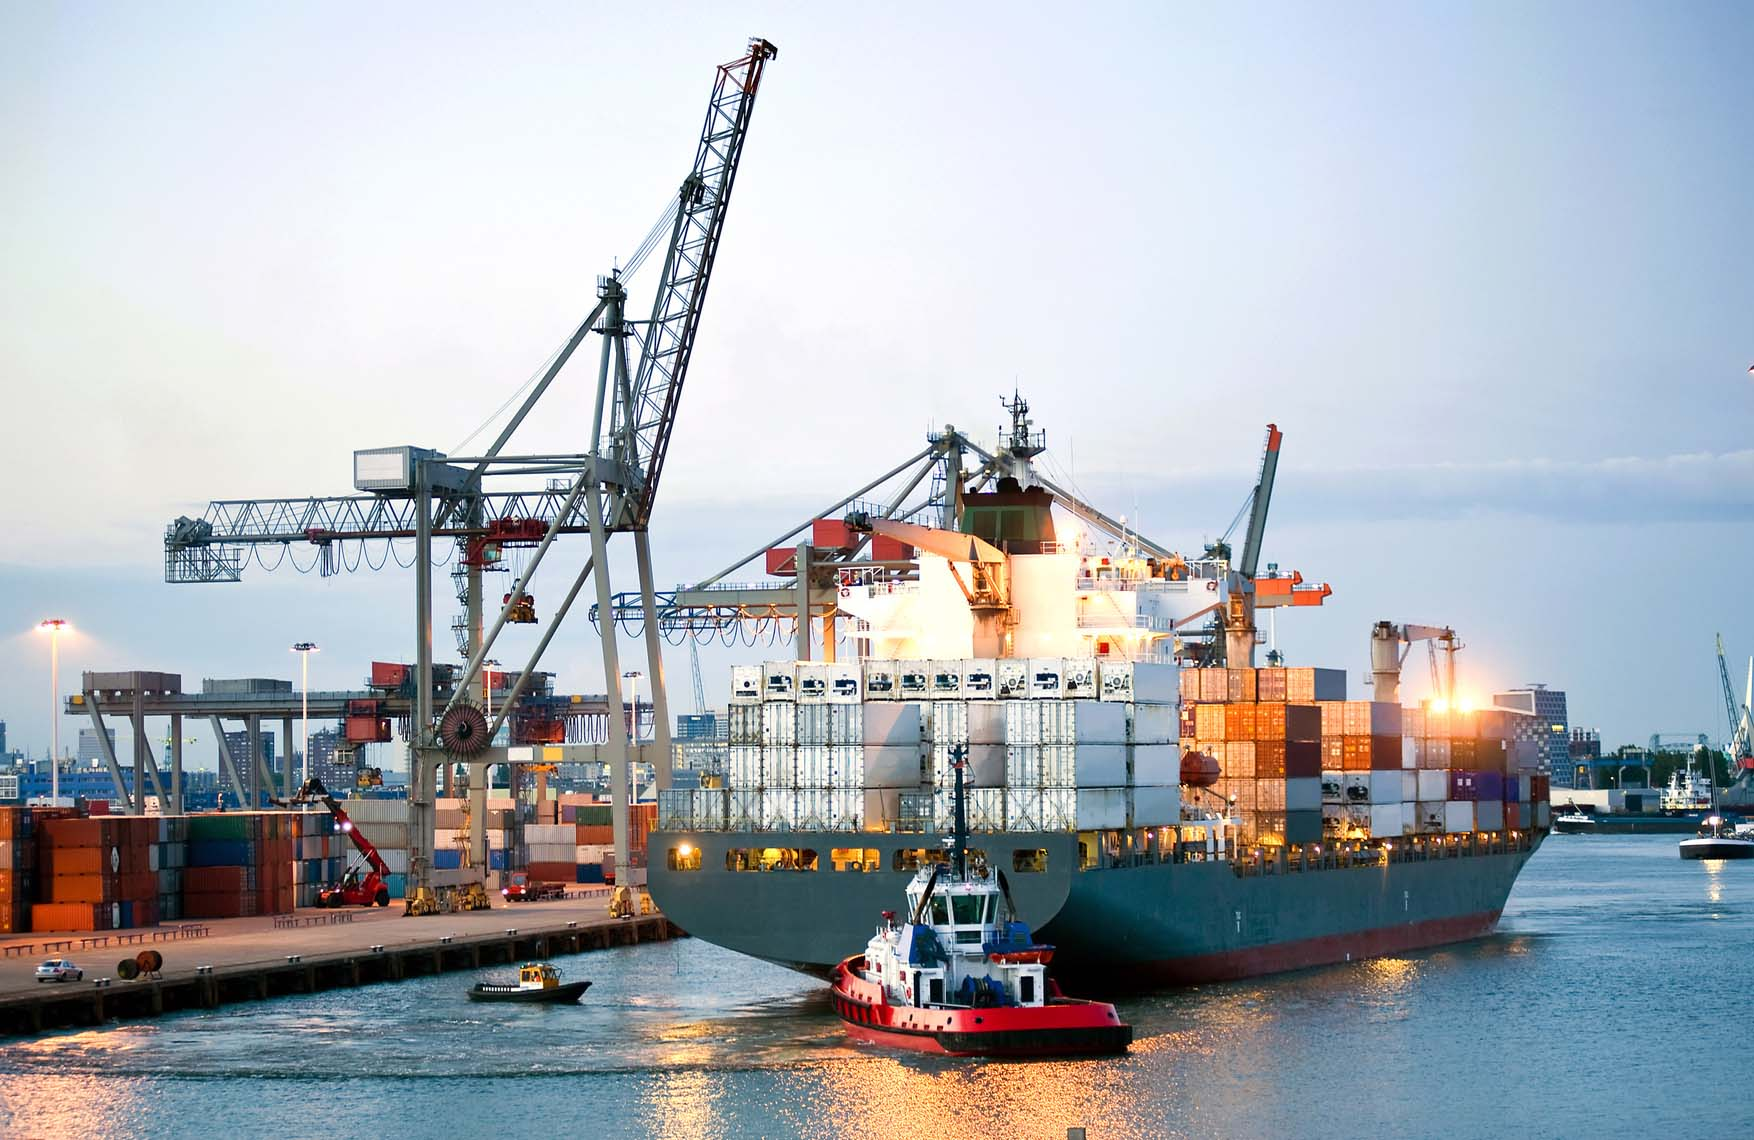 manouvering-container-ship-m